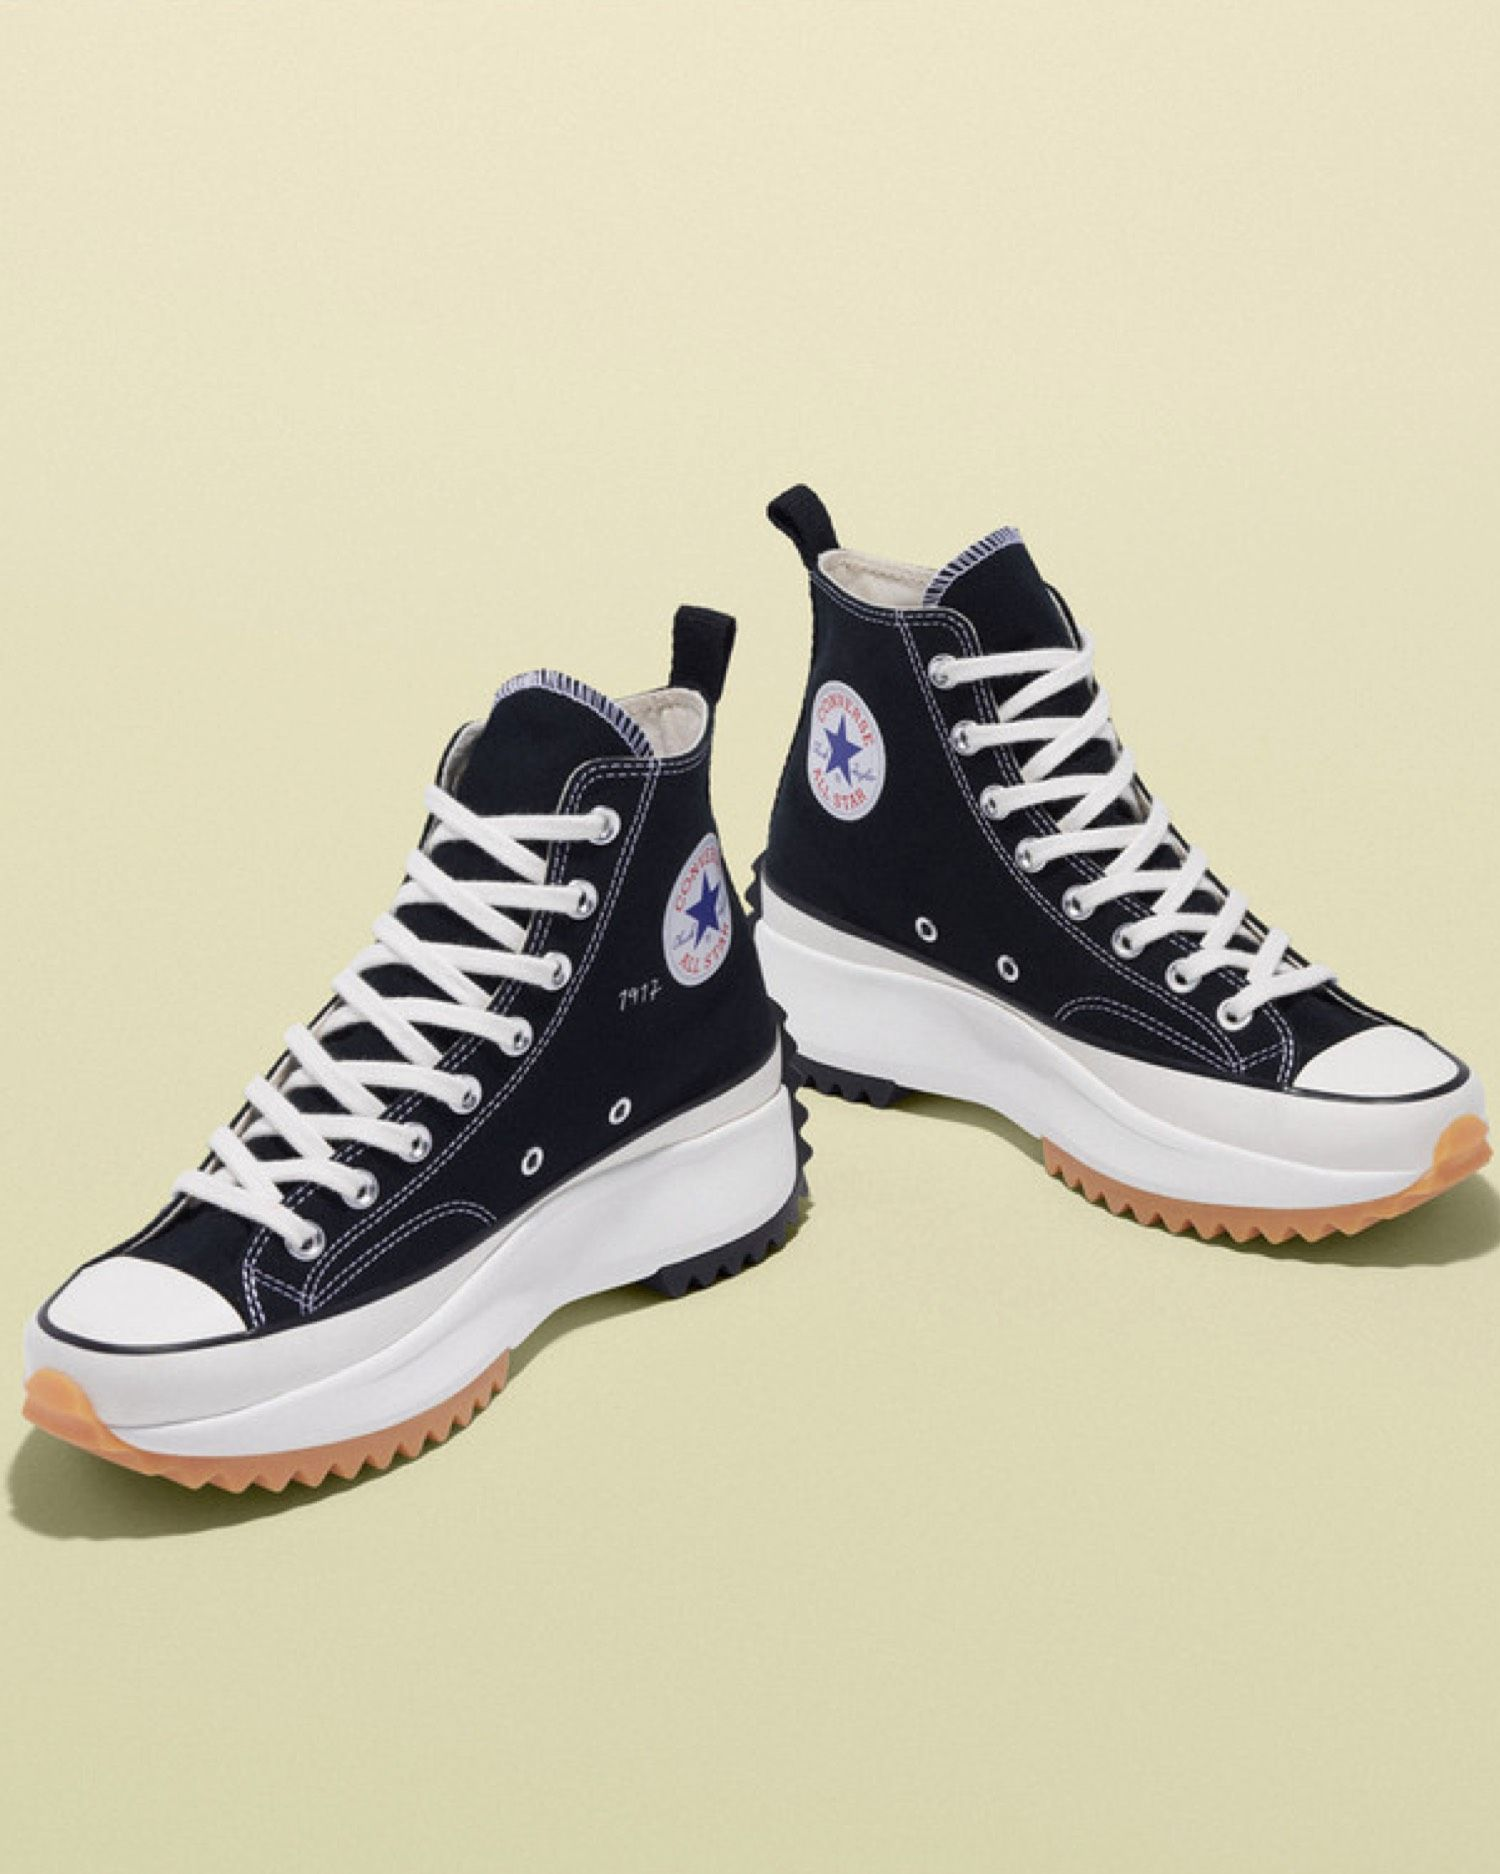 Jw Star Anderson Hike In Shoes X Run Mania 2019Converse byf7Yg6